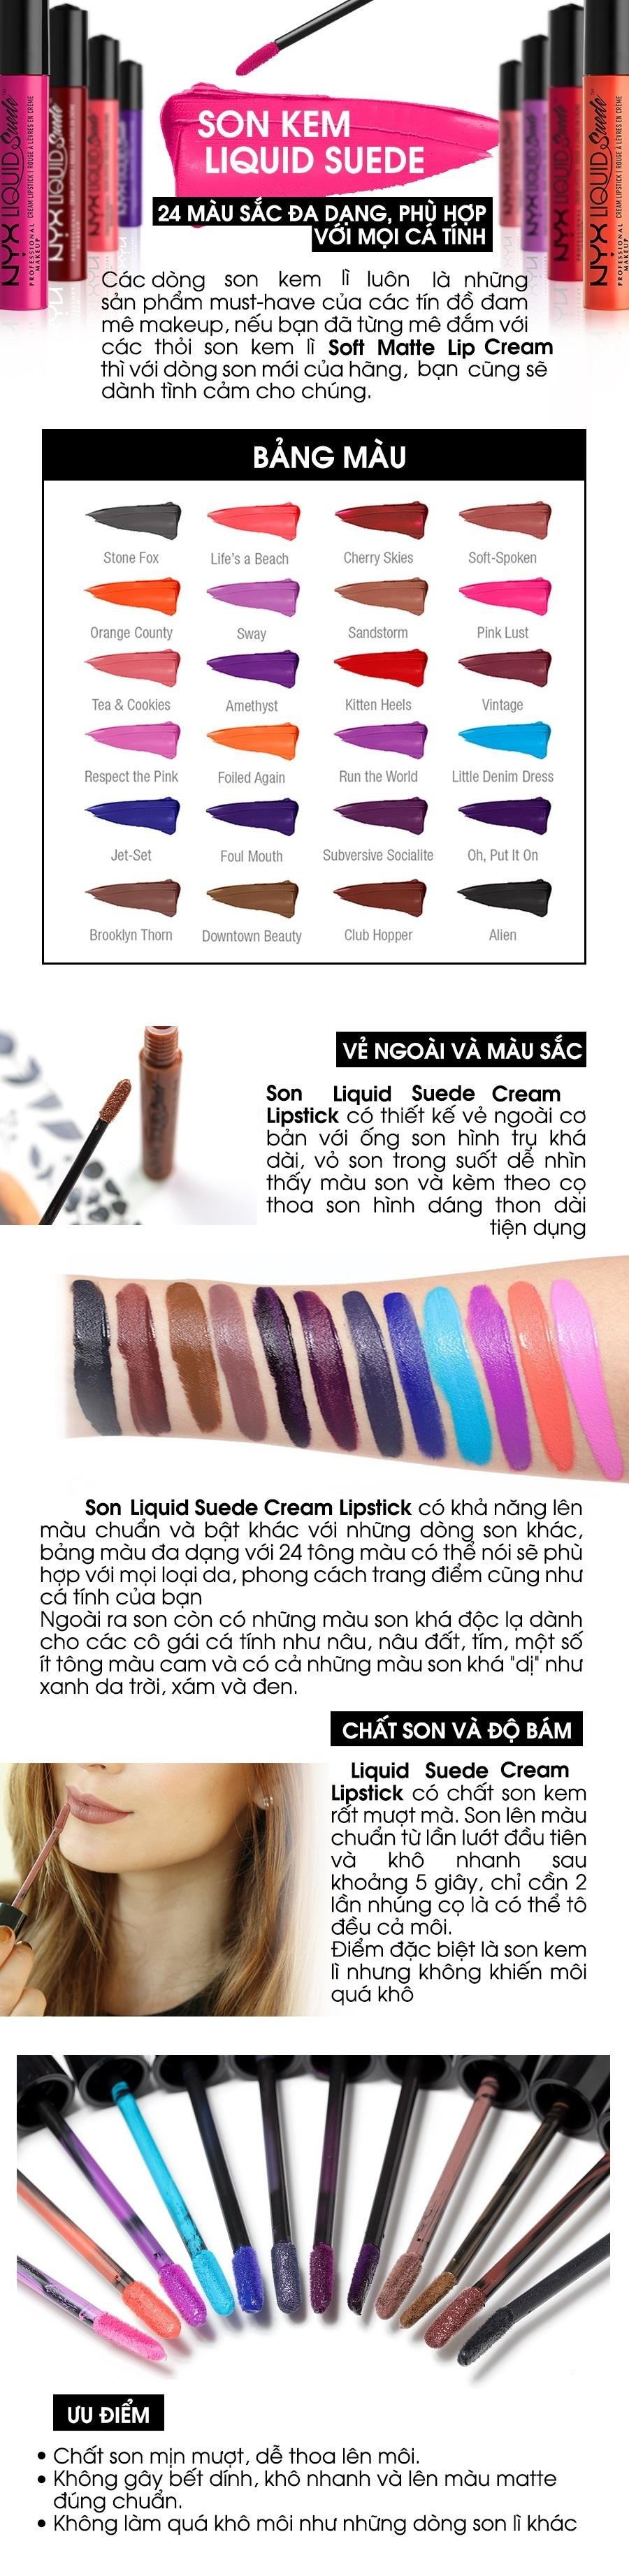 Son môi NYX Professional Makeup Liquid Suede Cream Lipstick LSCL13 Respect The Pink